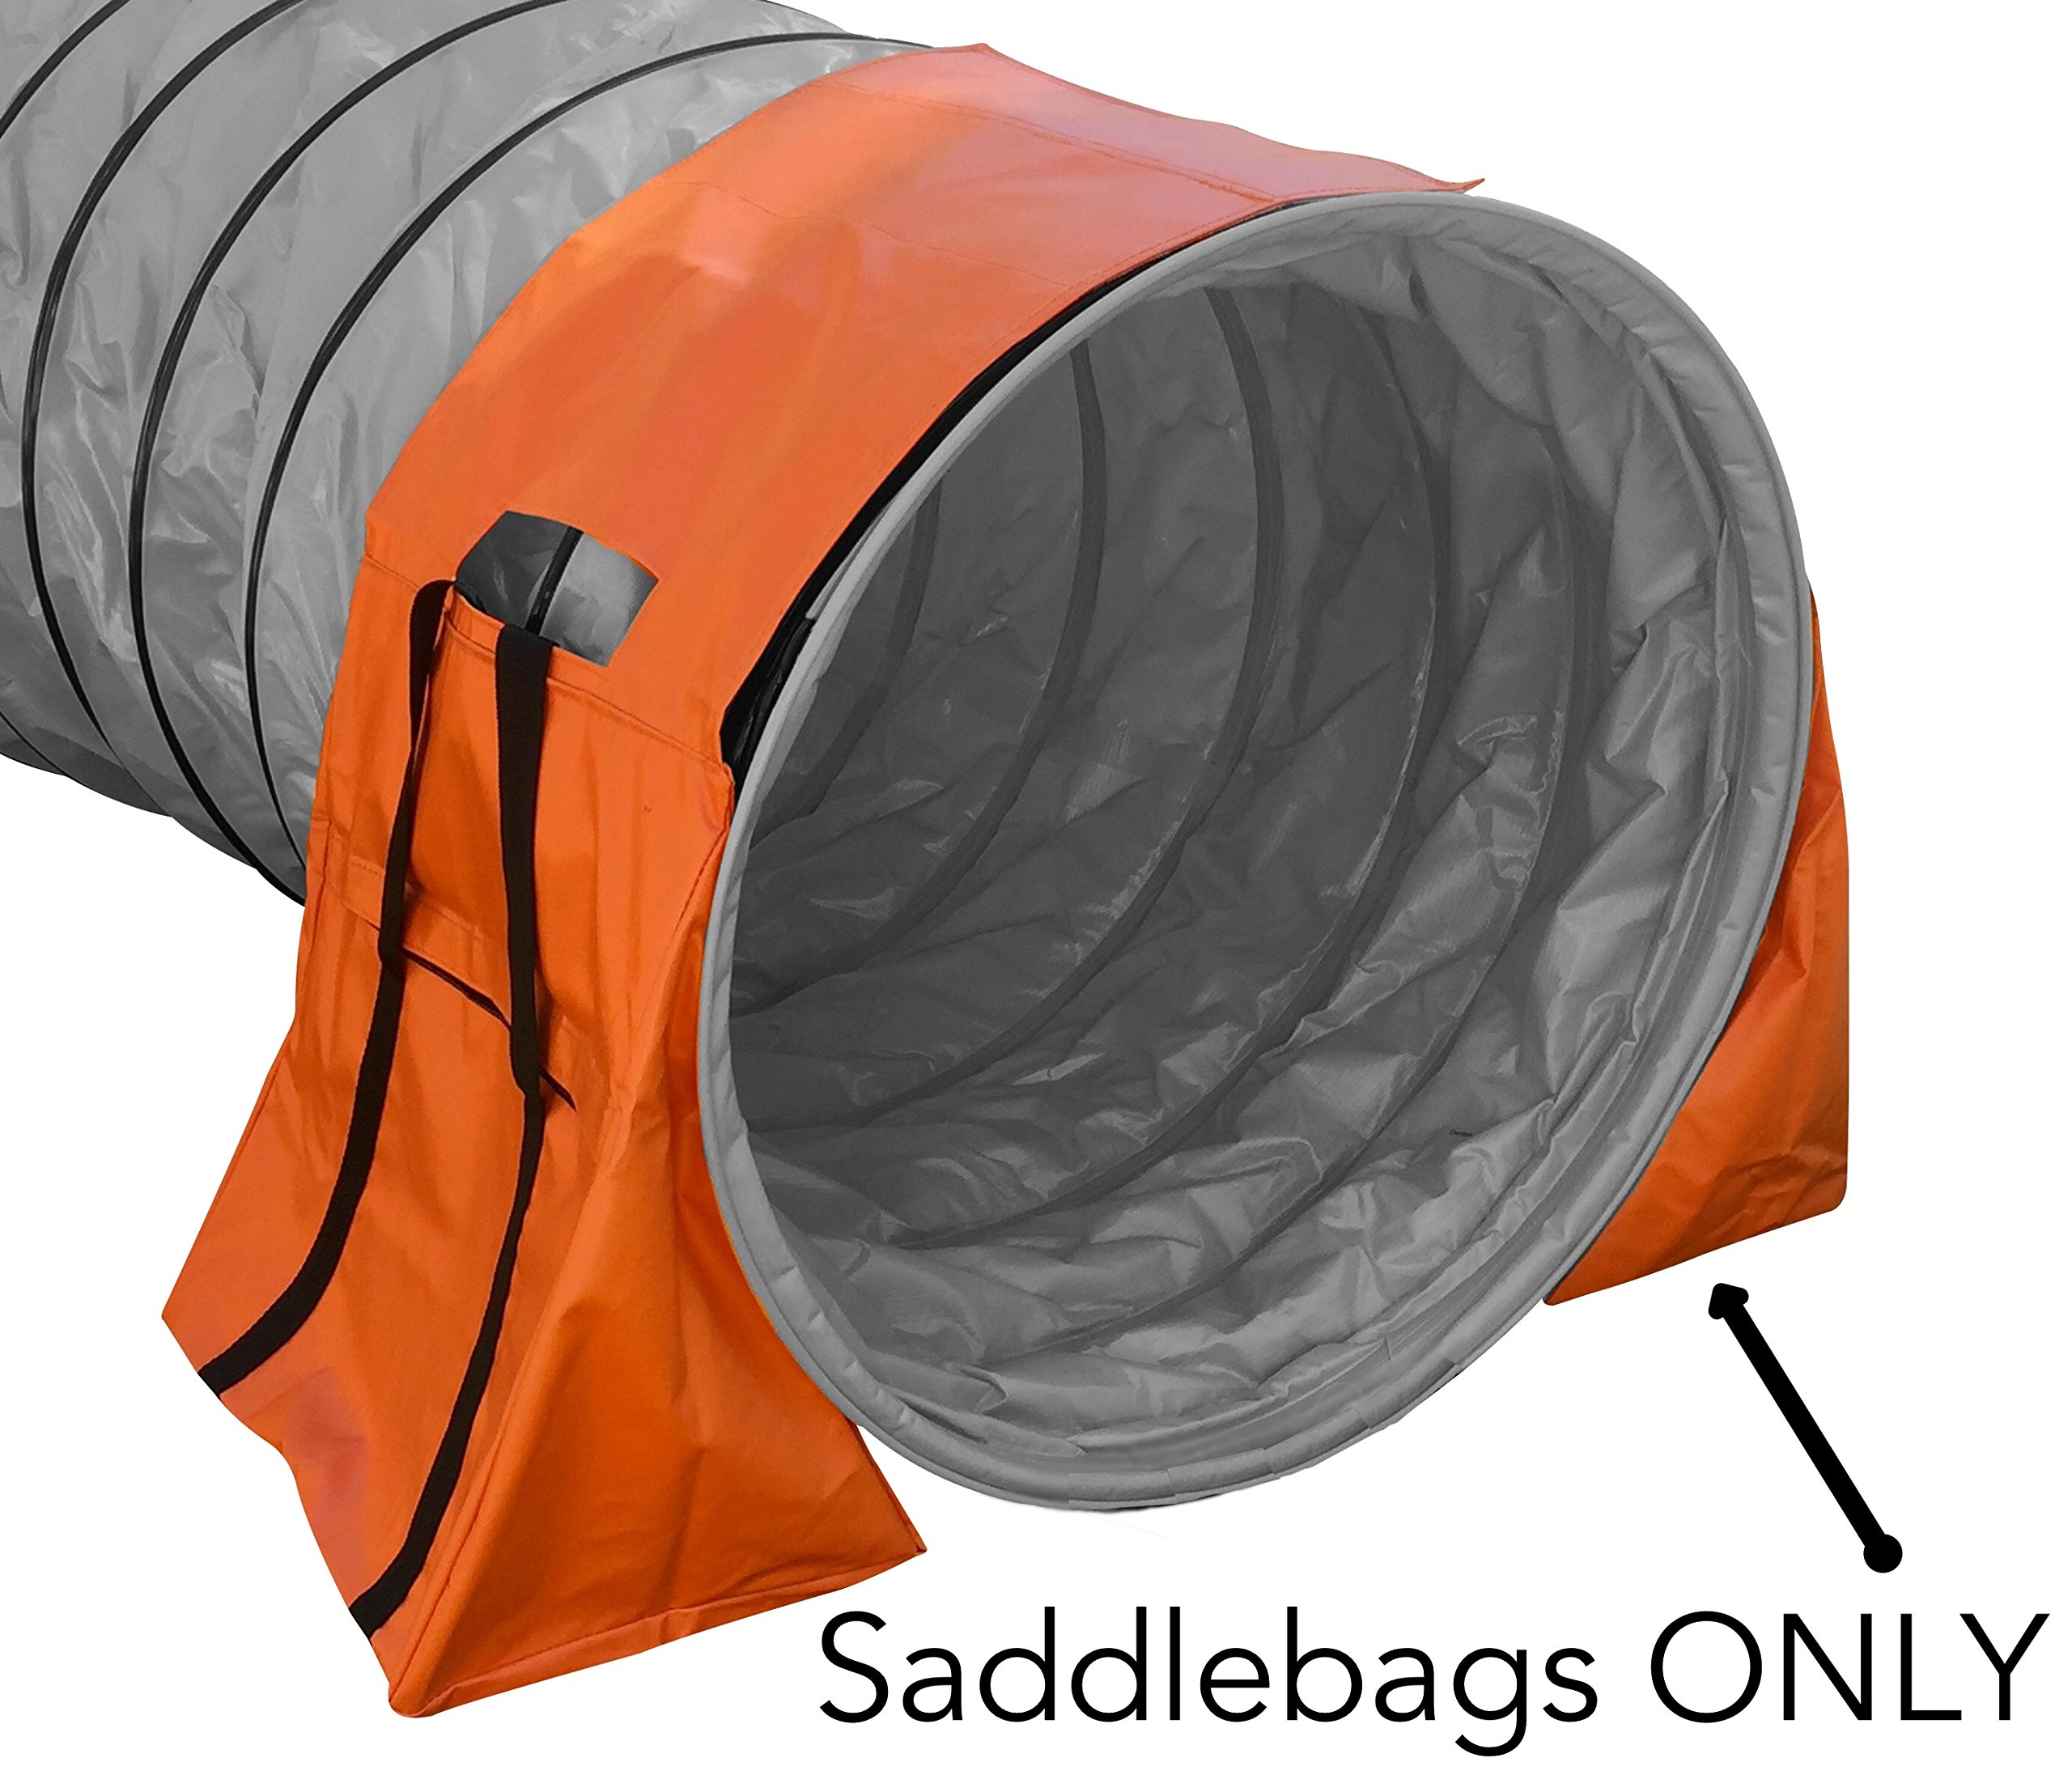 Non-Constricting Saddlebags for Stabilizing Dog Agility Tunnel Equipment Indoor or Outdoor, Orange Color (1 PACK) by Rise8